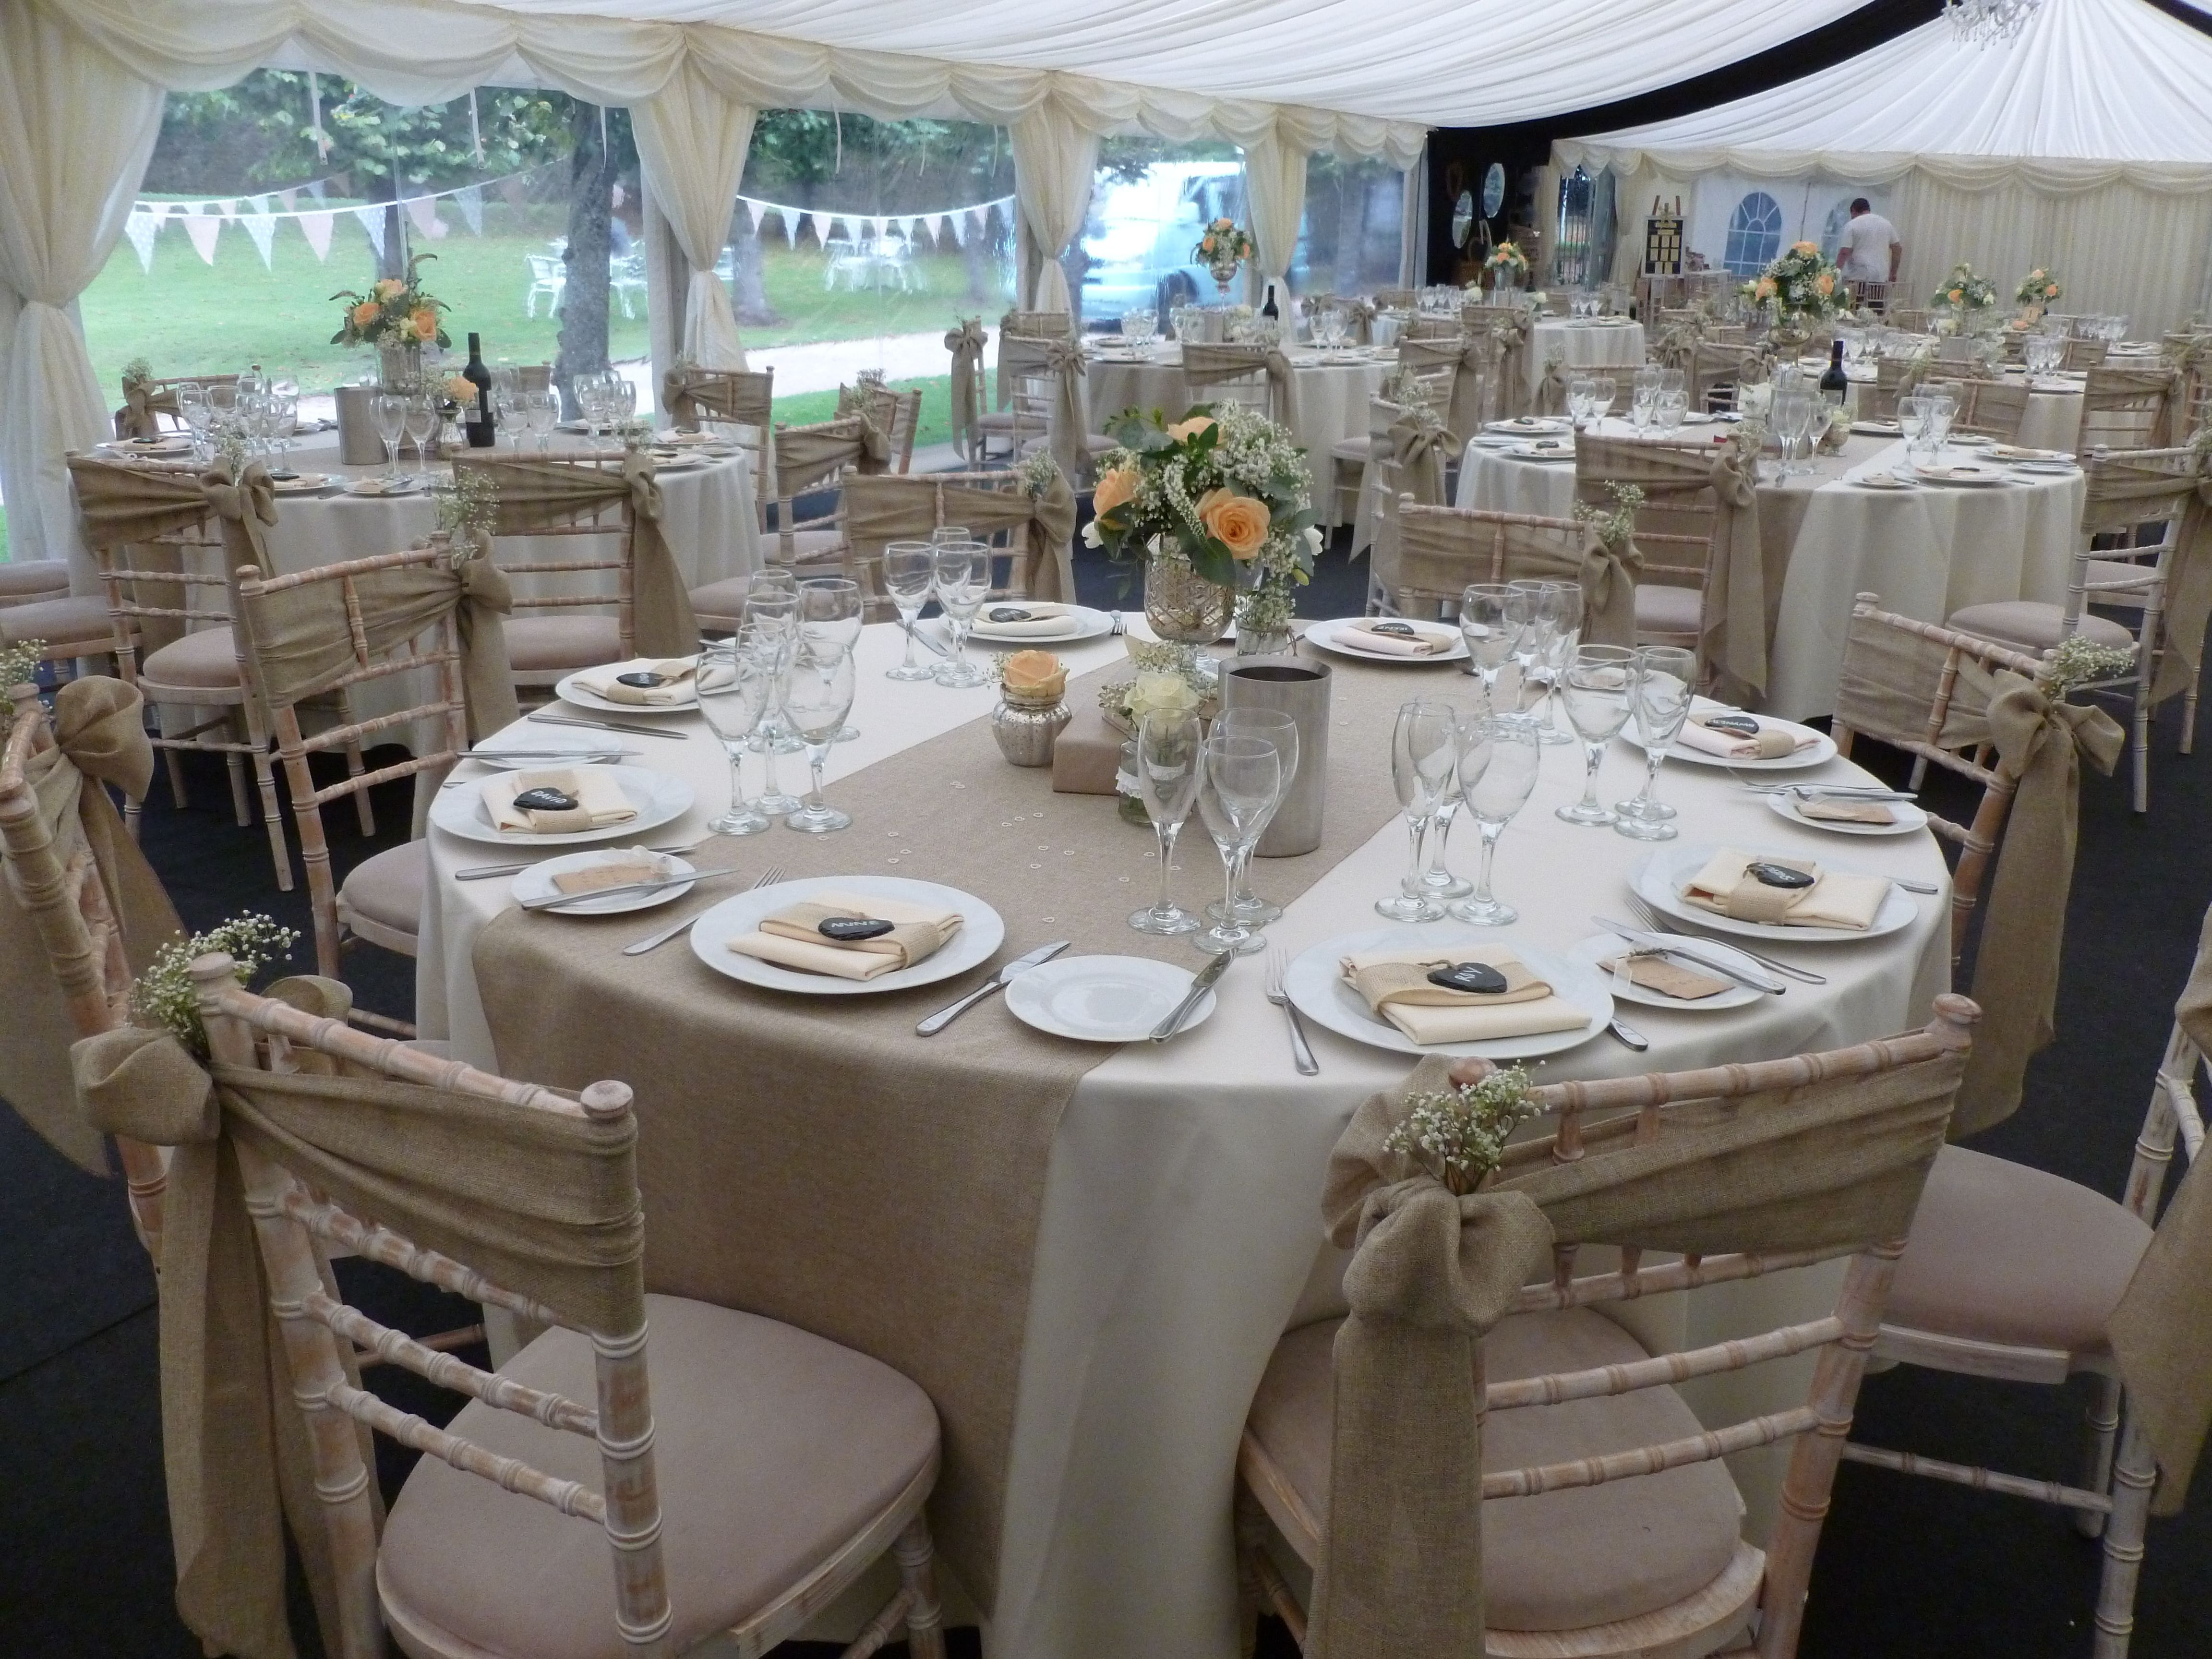 burlap chair covers wedding desk no arms sashes and table runners dressed on chiavari chairs